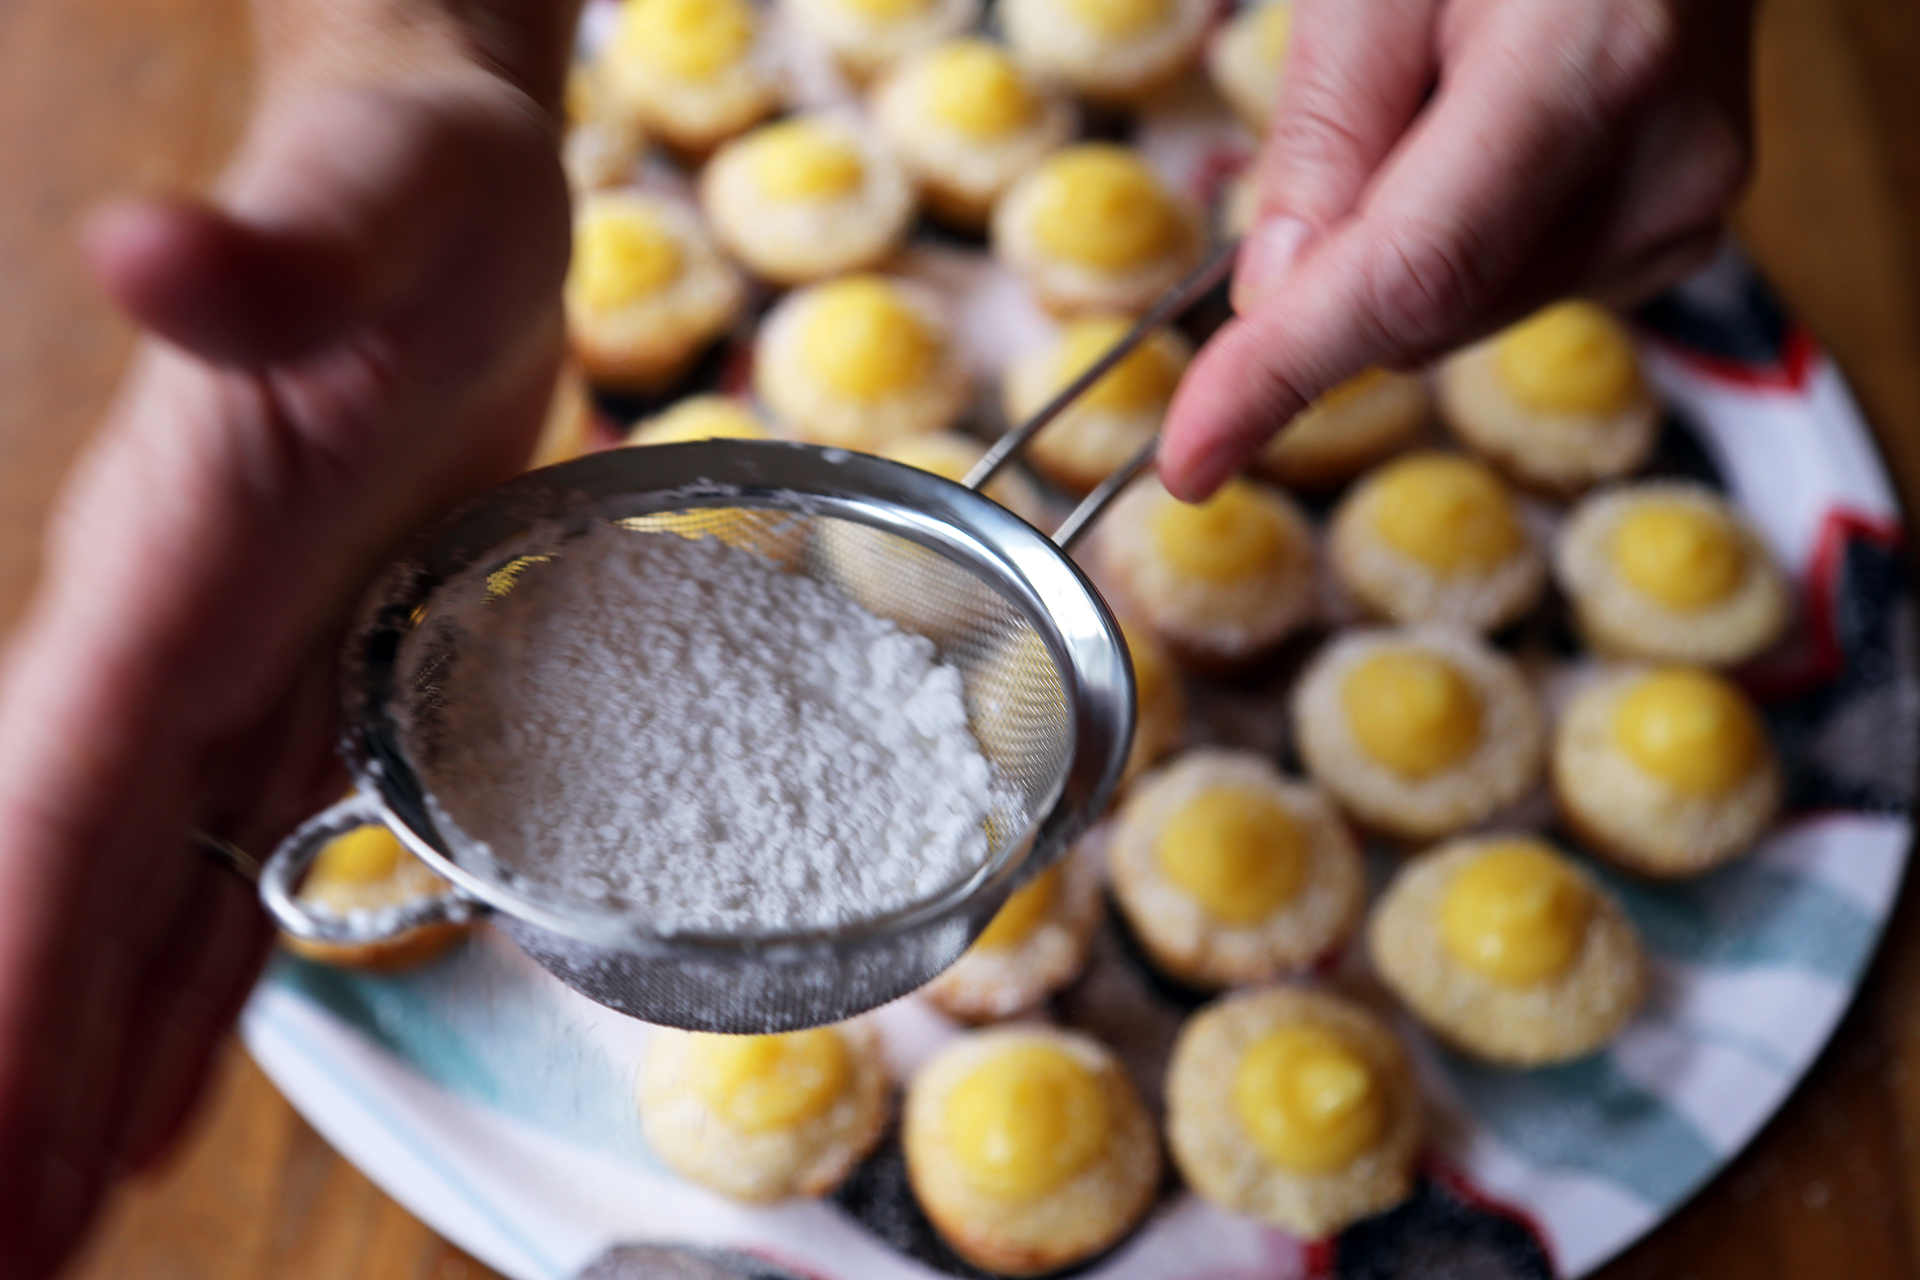 To serve, dust the cupcakes with powdered sugar.